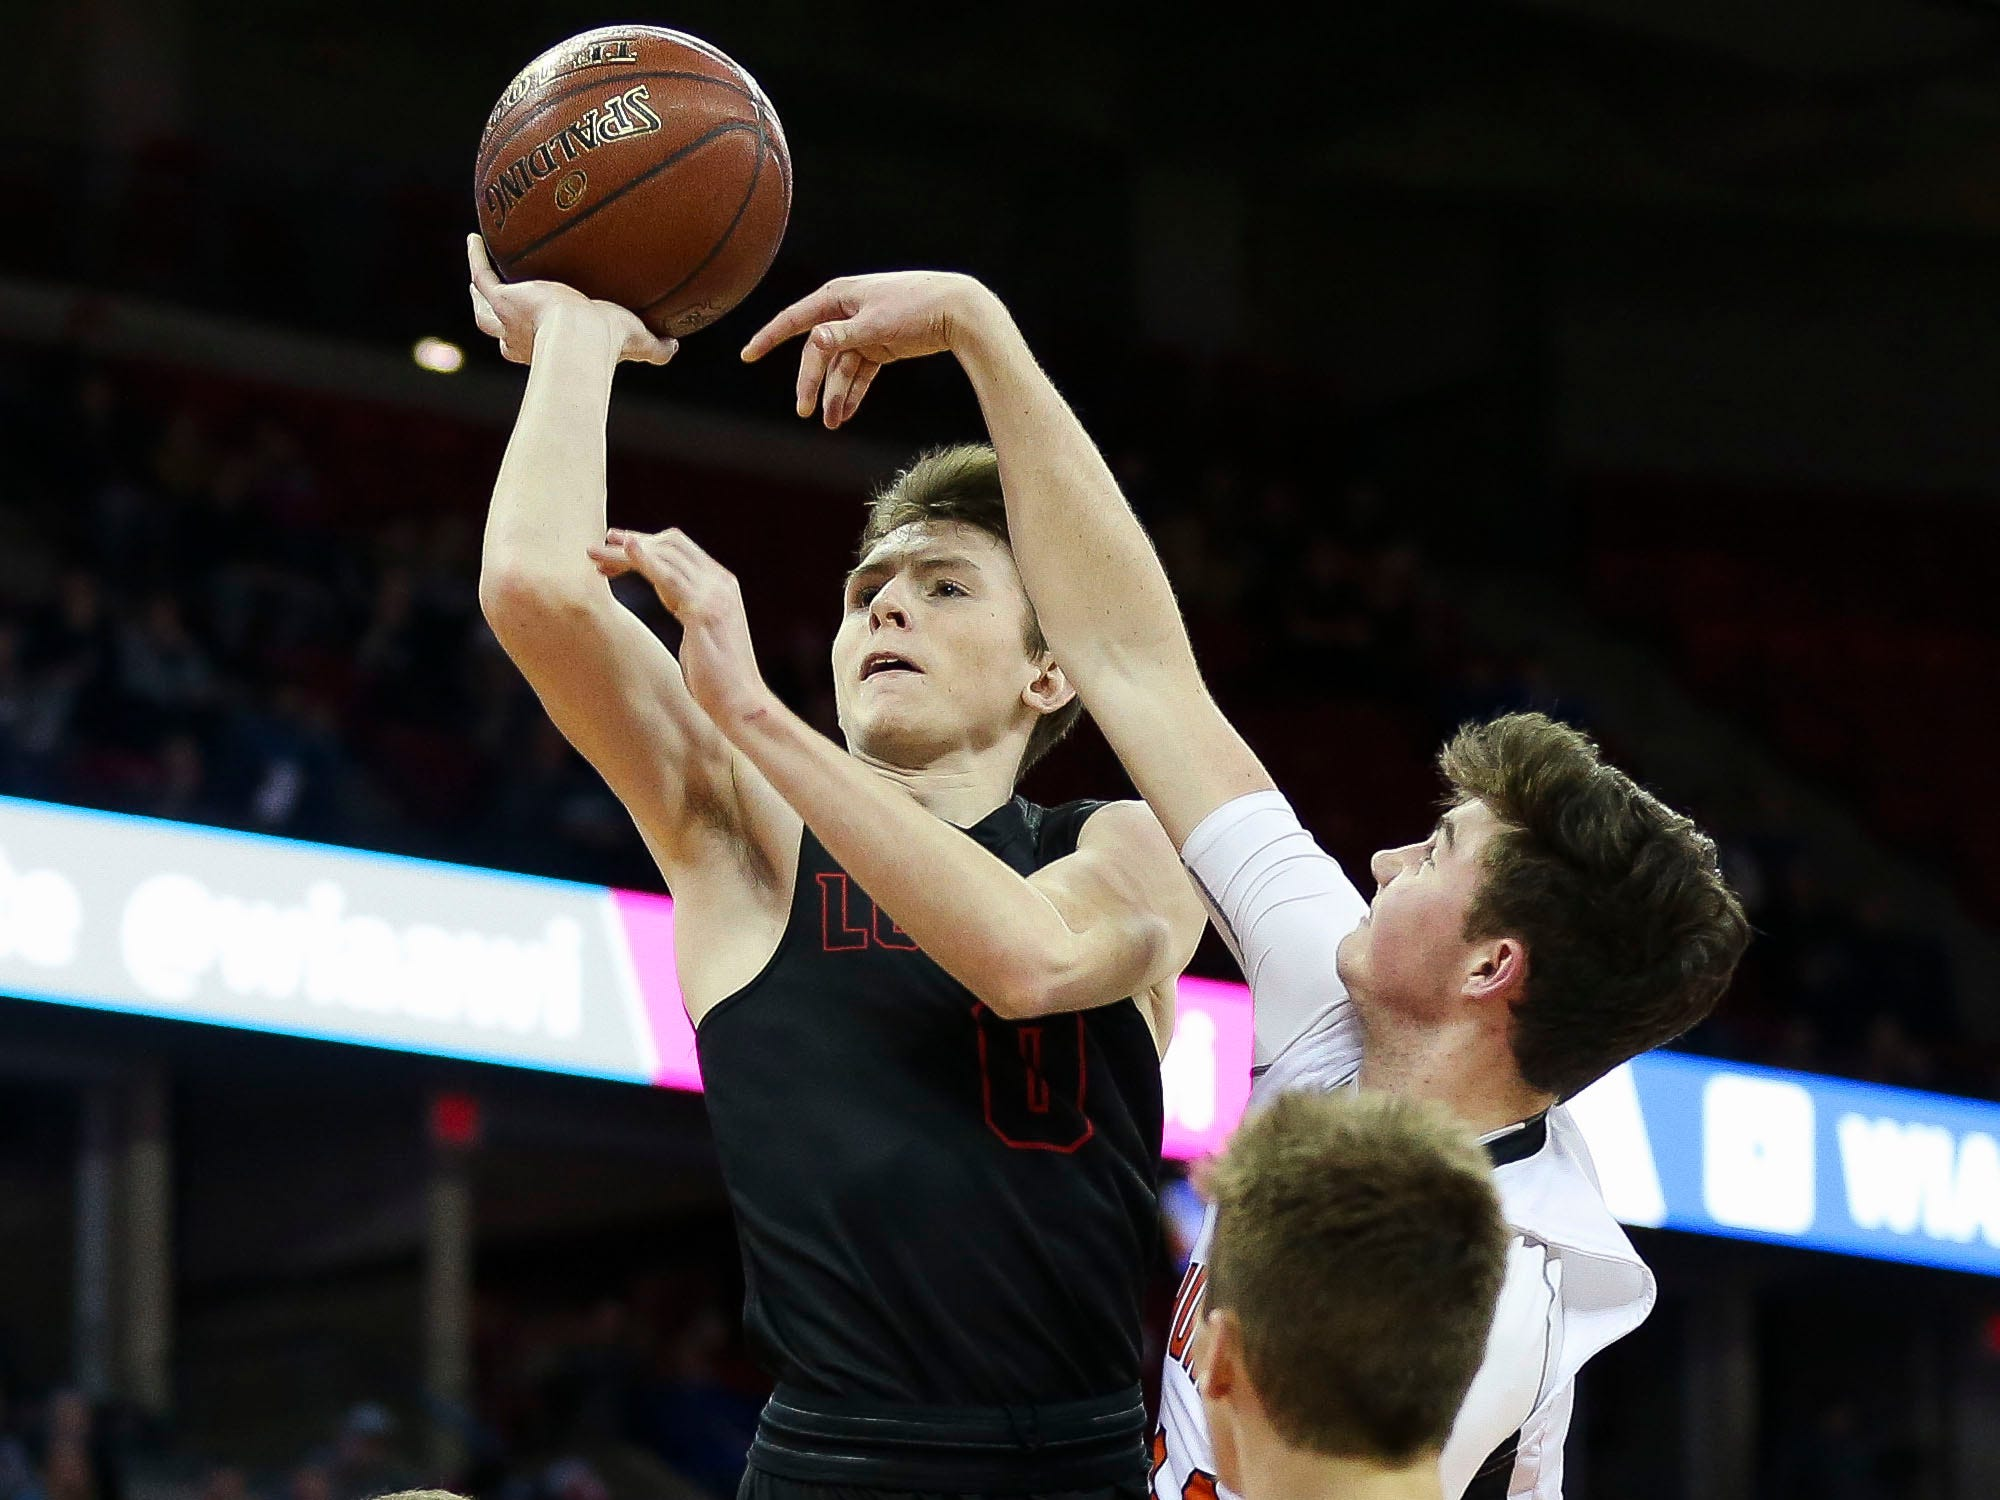 Lourdes Academy's Hayden Jones (0) charges Osseo-Fairchild High School's Logan Mulhern (21) on his way to the basket in a Division 4 boys basketball state semifinal on Thursday, March 14, 2019, at the Kohl Center in Madison, Wis. Jones hit a shot with 1.5 seconds remaining in the game to give Lourdes Academy a 70-68 victory.